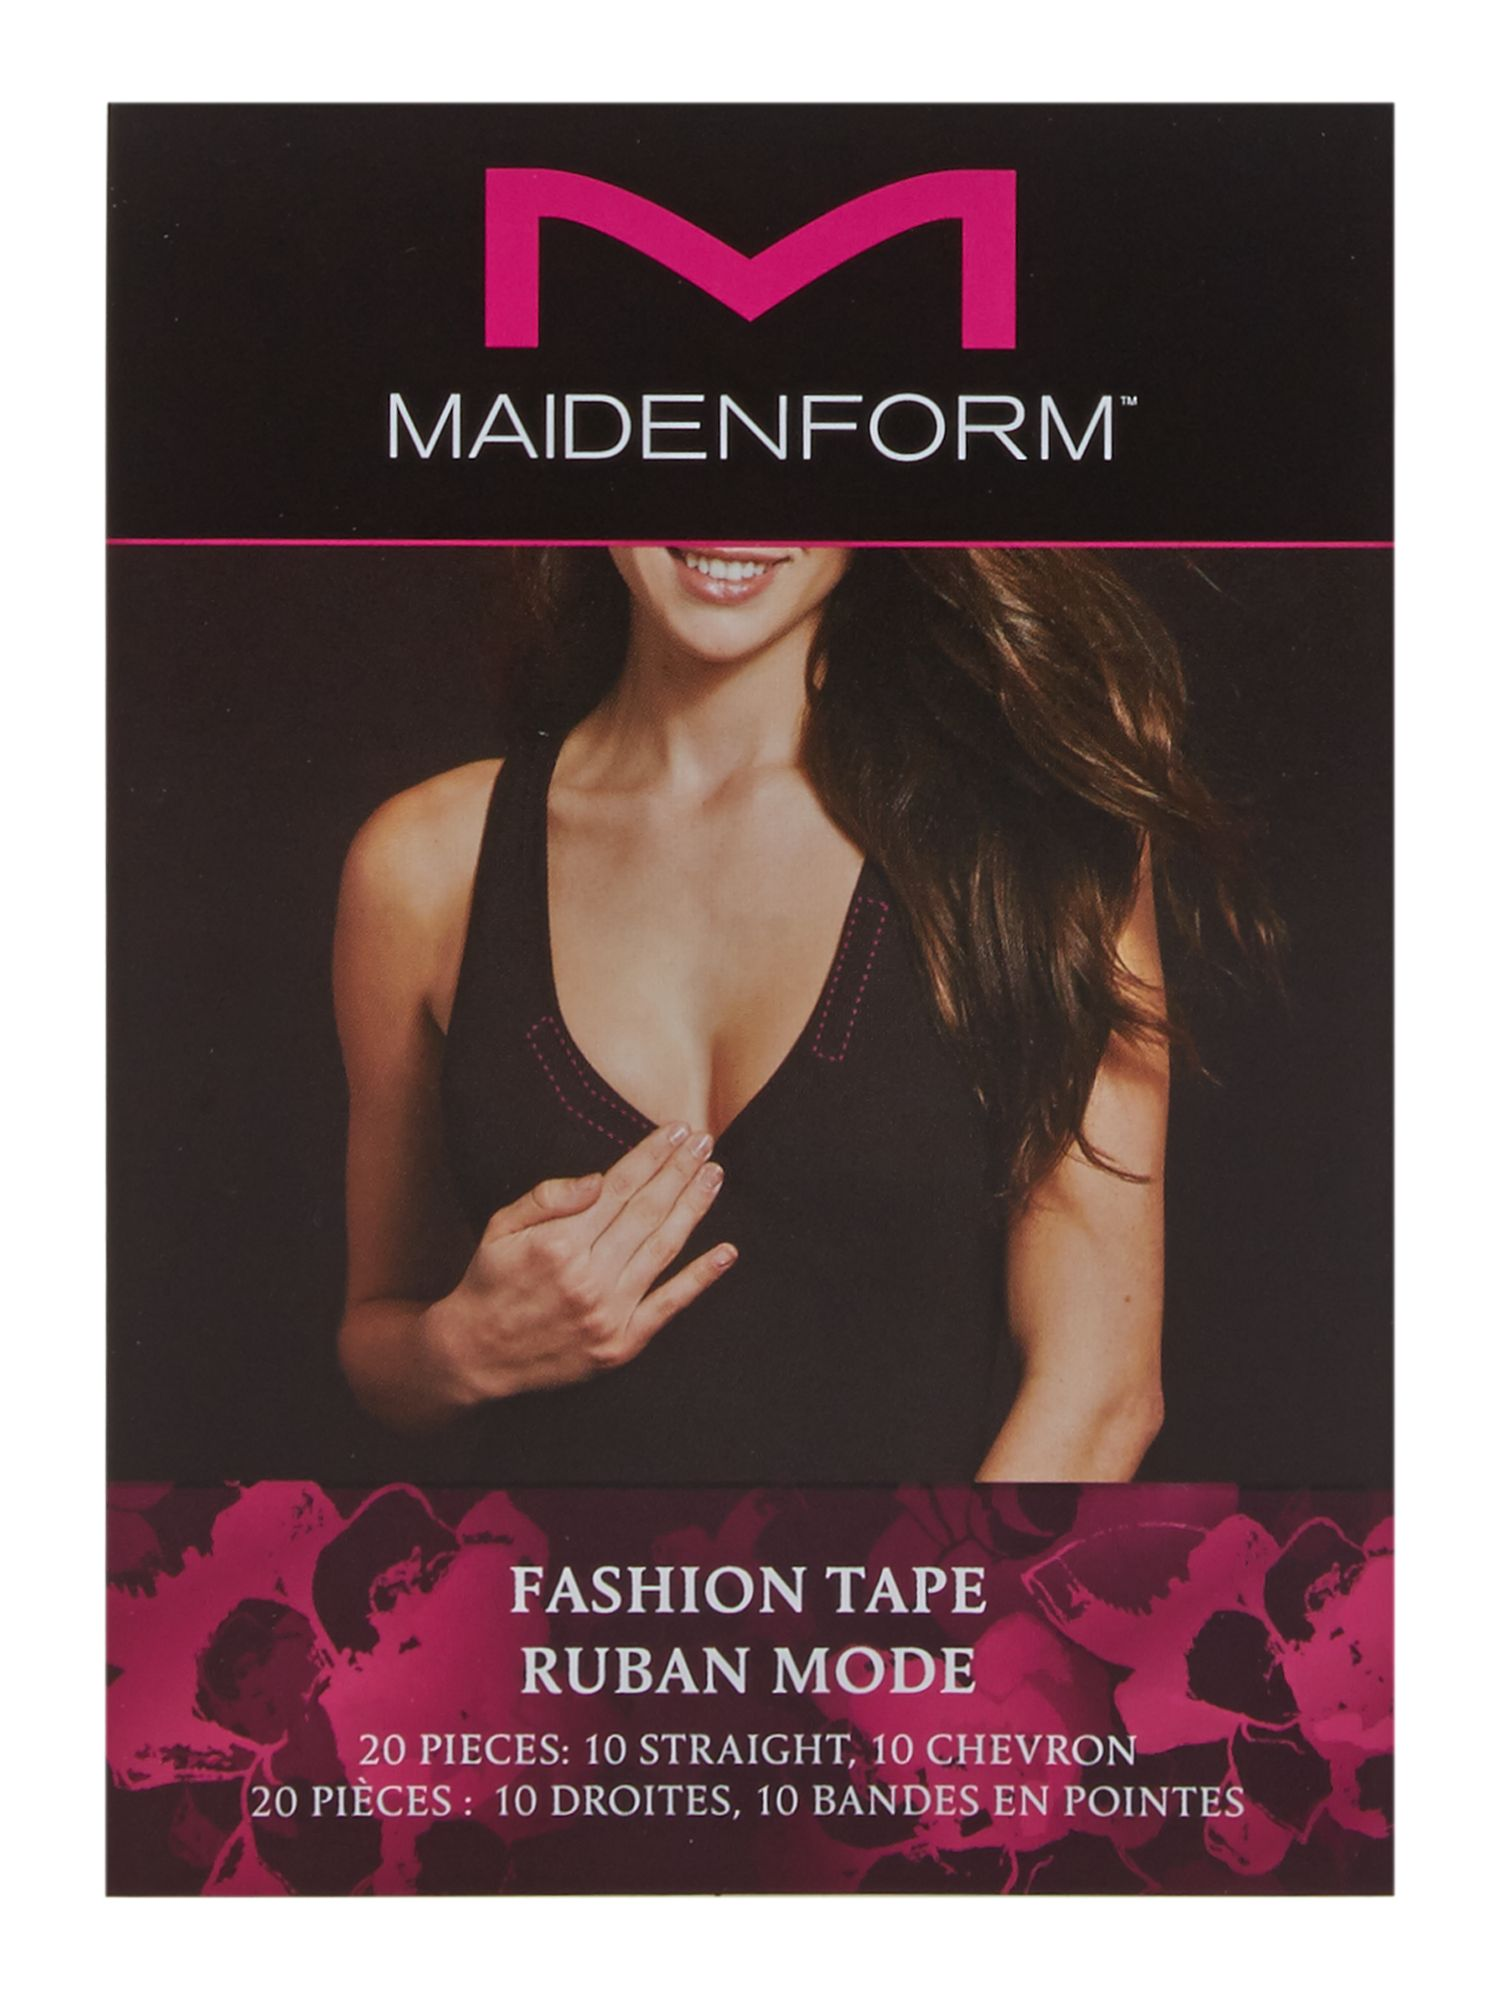 Maidenform Accessories Maidenform Accessories 20 Strip fashion tape, Clear